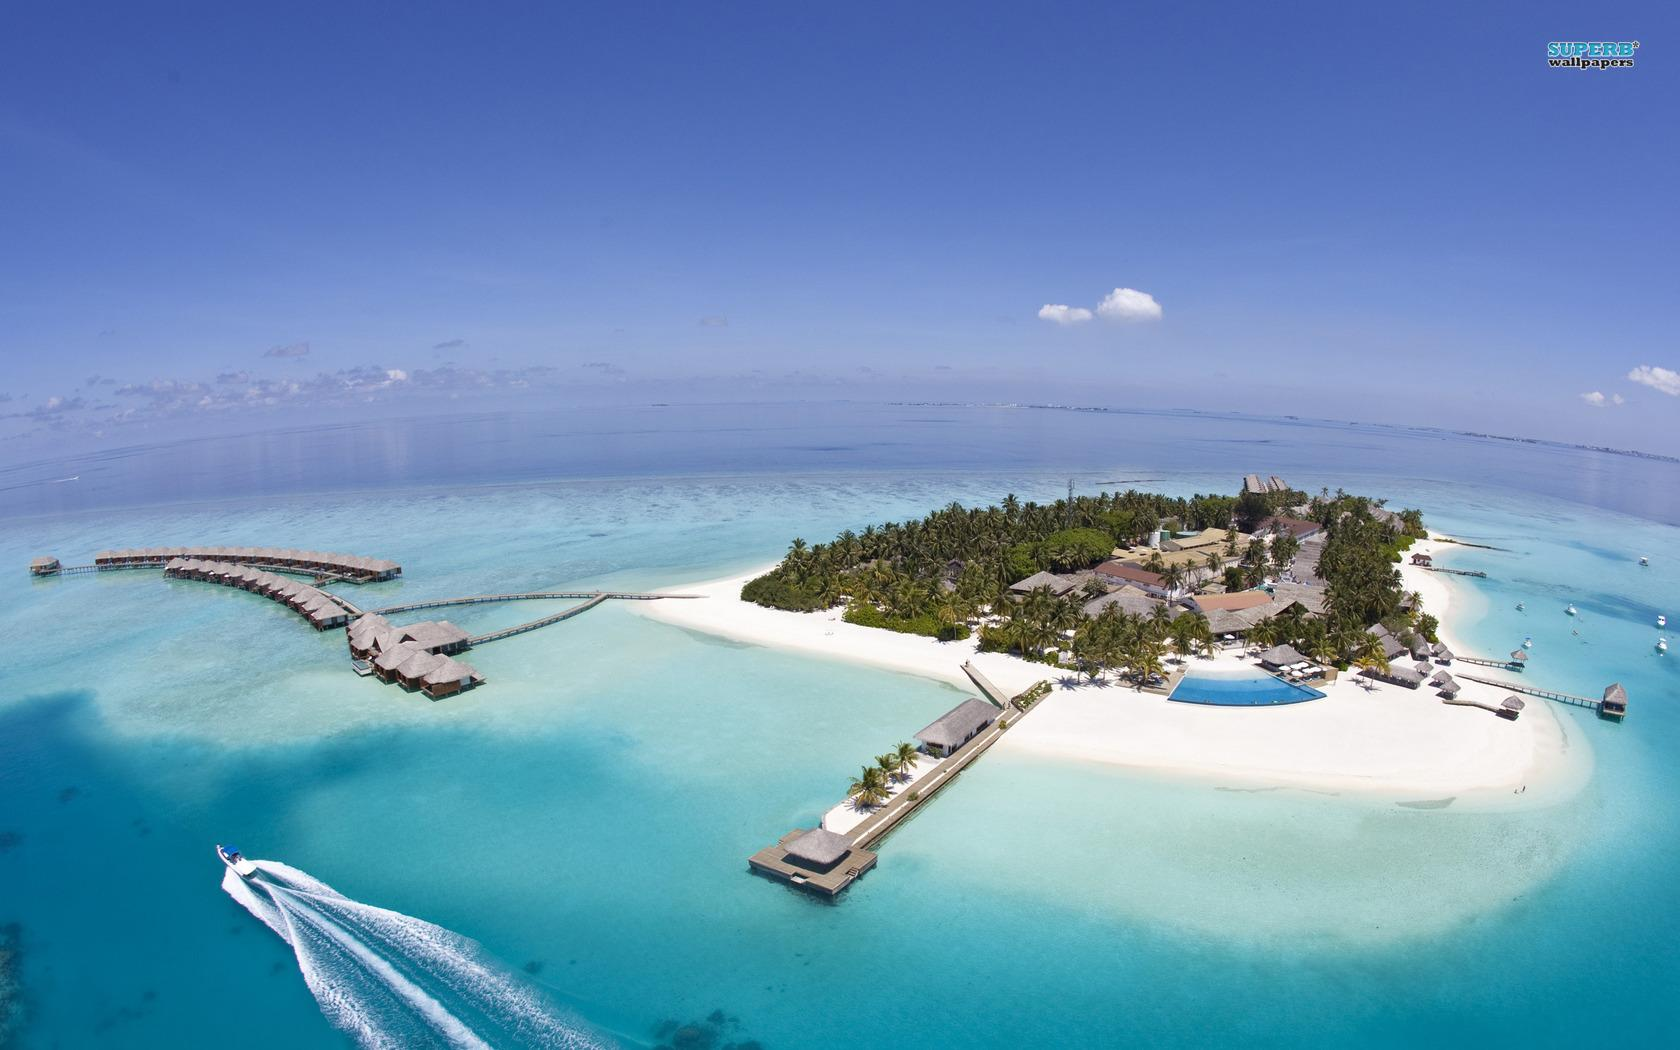 Beautiful Maldives Wallpapers